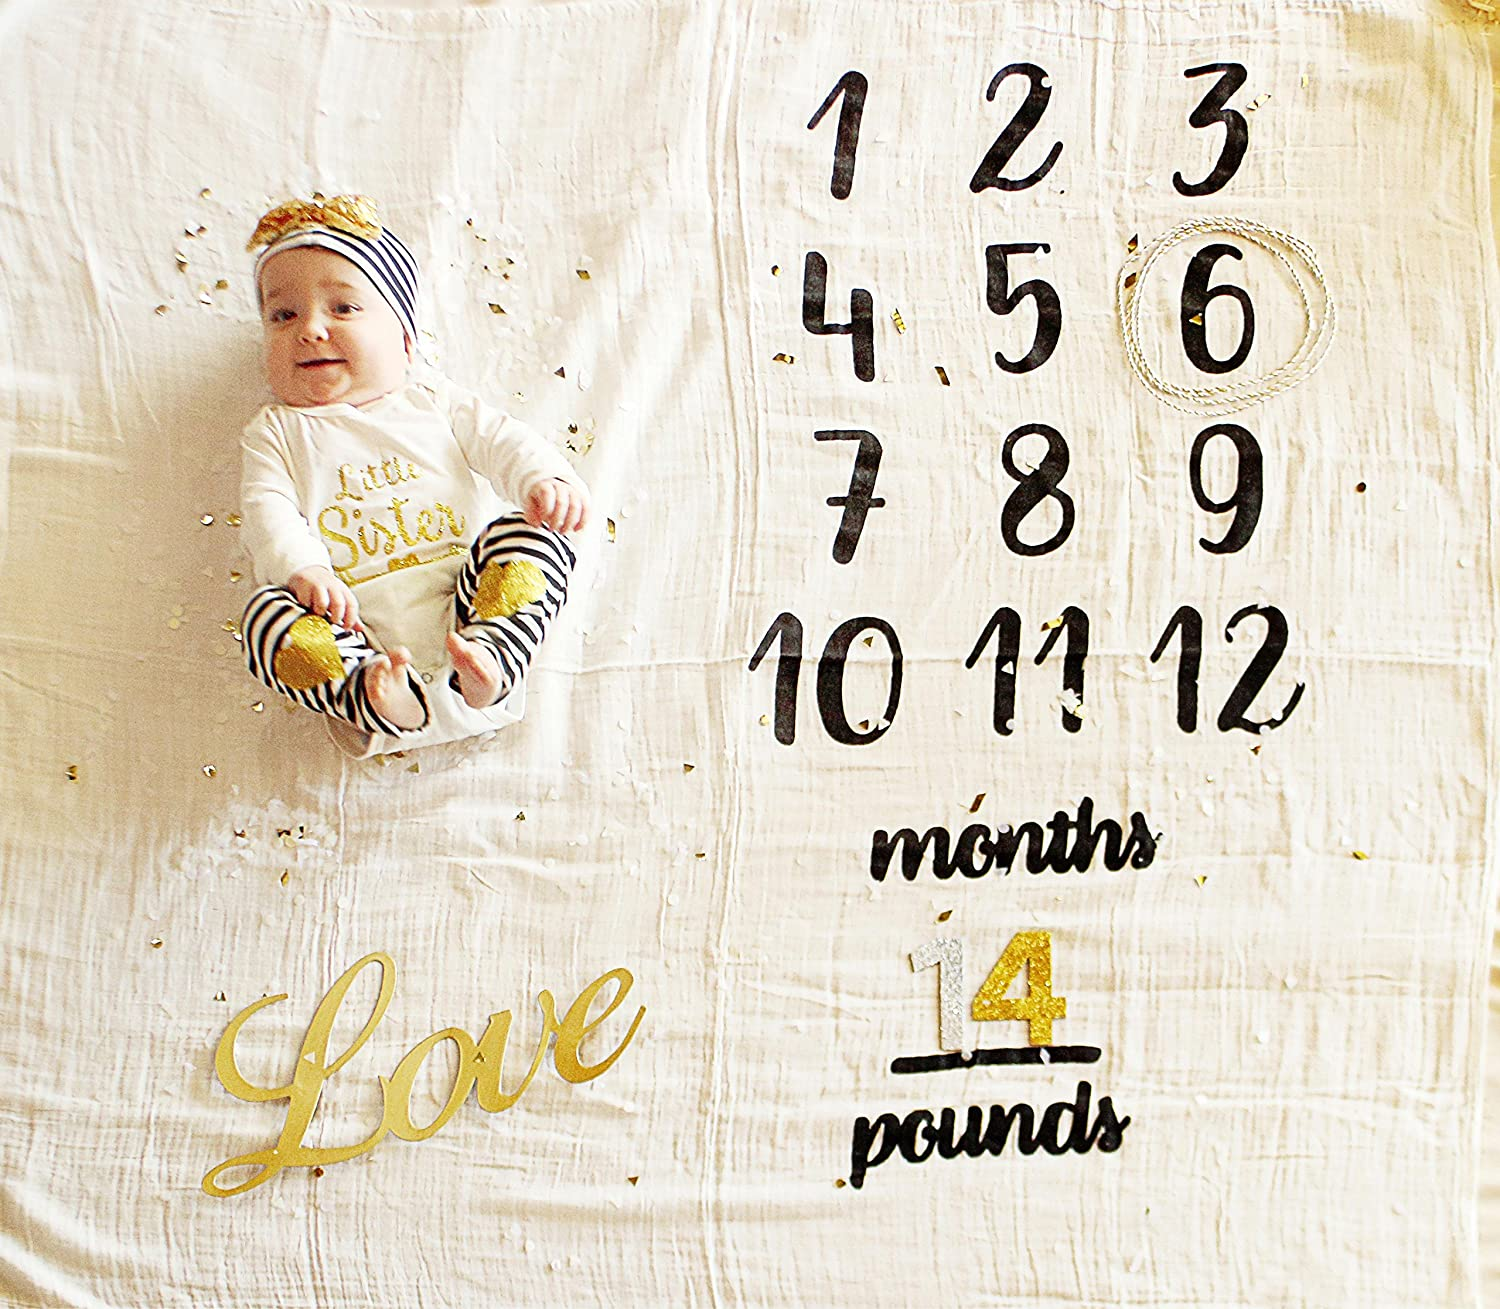 Twin Growing Newborn Baby Age Monthly Milestone Blanket, Photo Gift idea, Perfect for Boys or Girls and Baby Showers Yiwu MEE Scarf Co. Ltd. 01